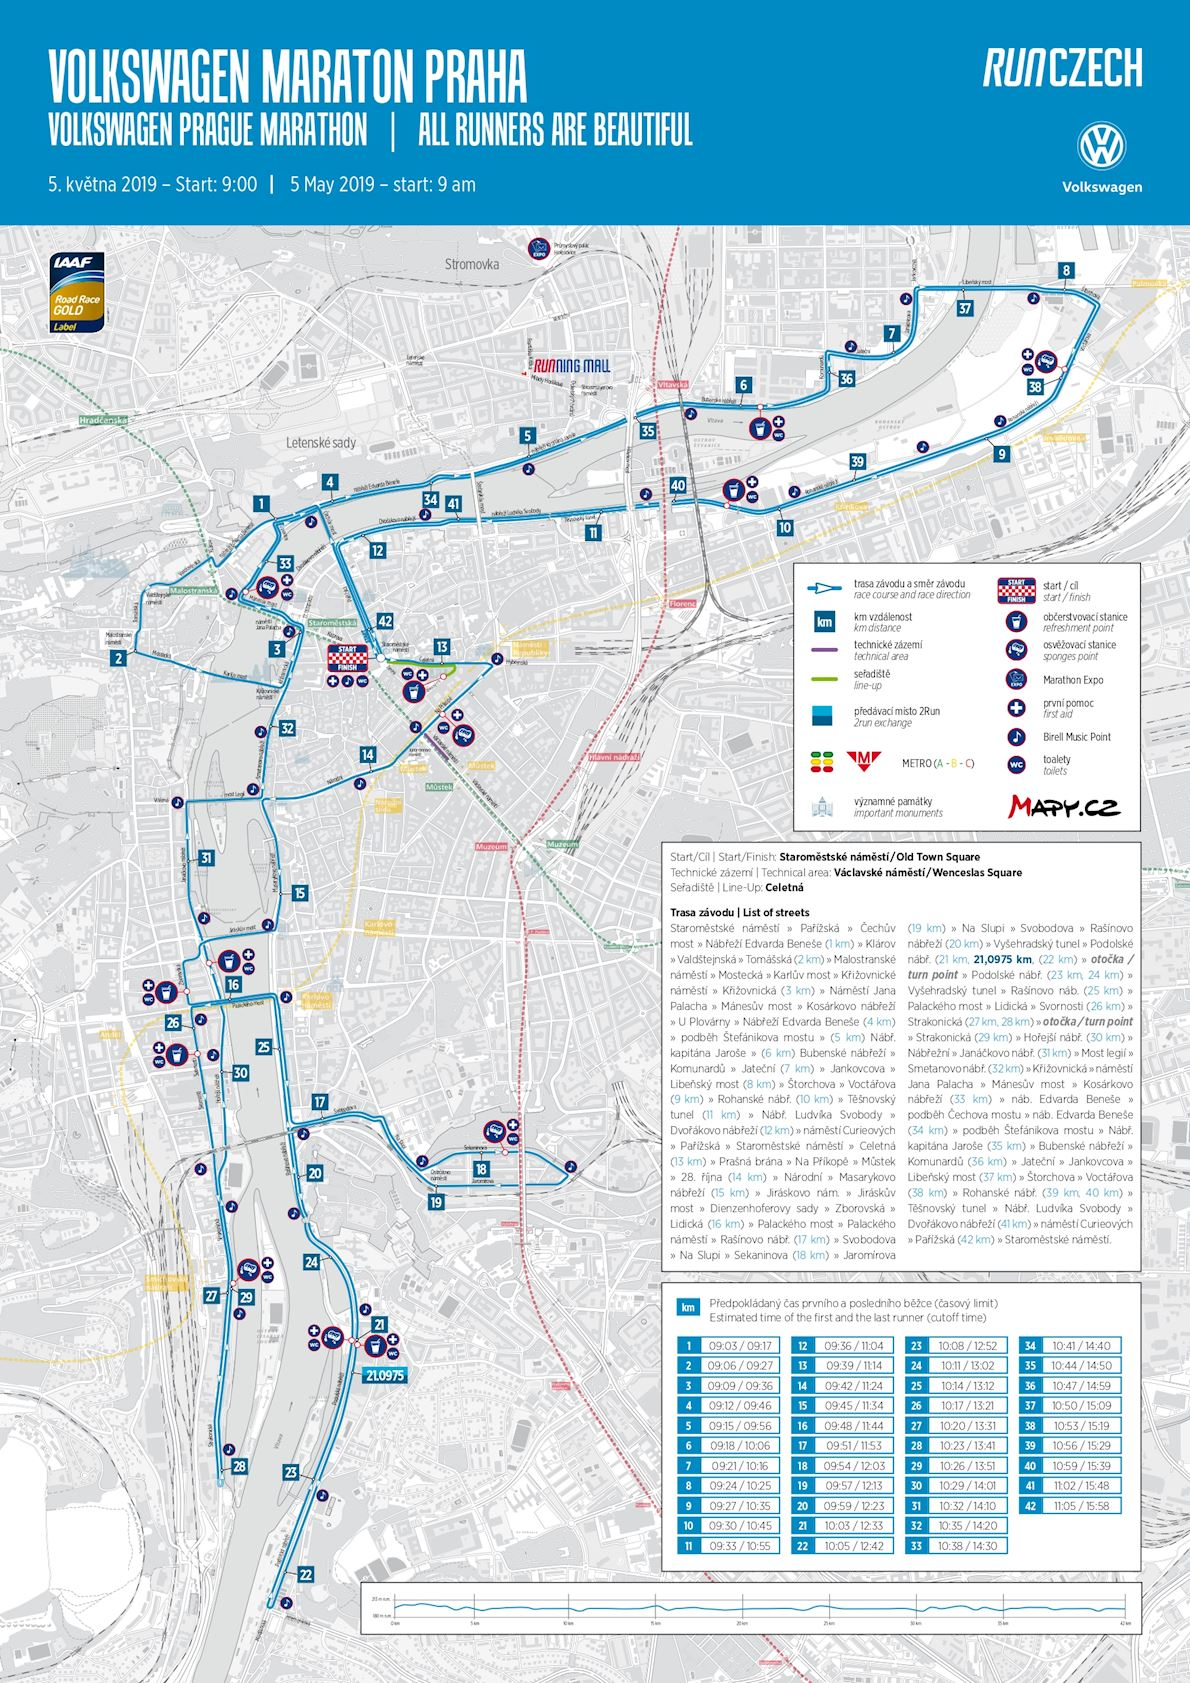 Volkswagen Prague Marathon Route Map